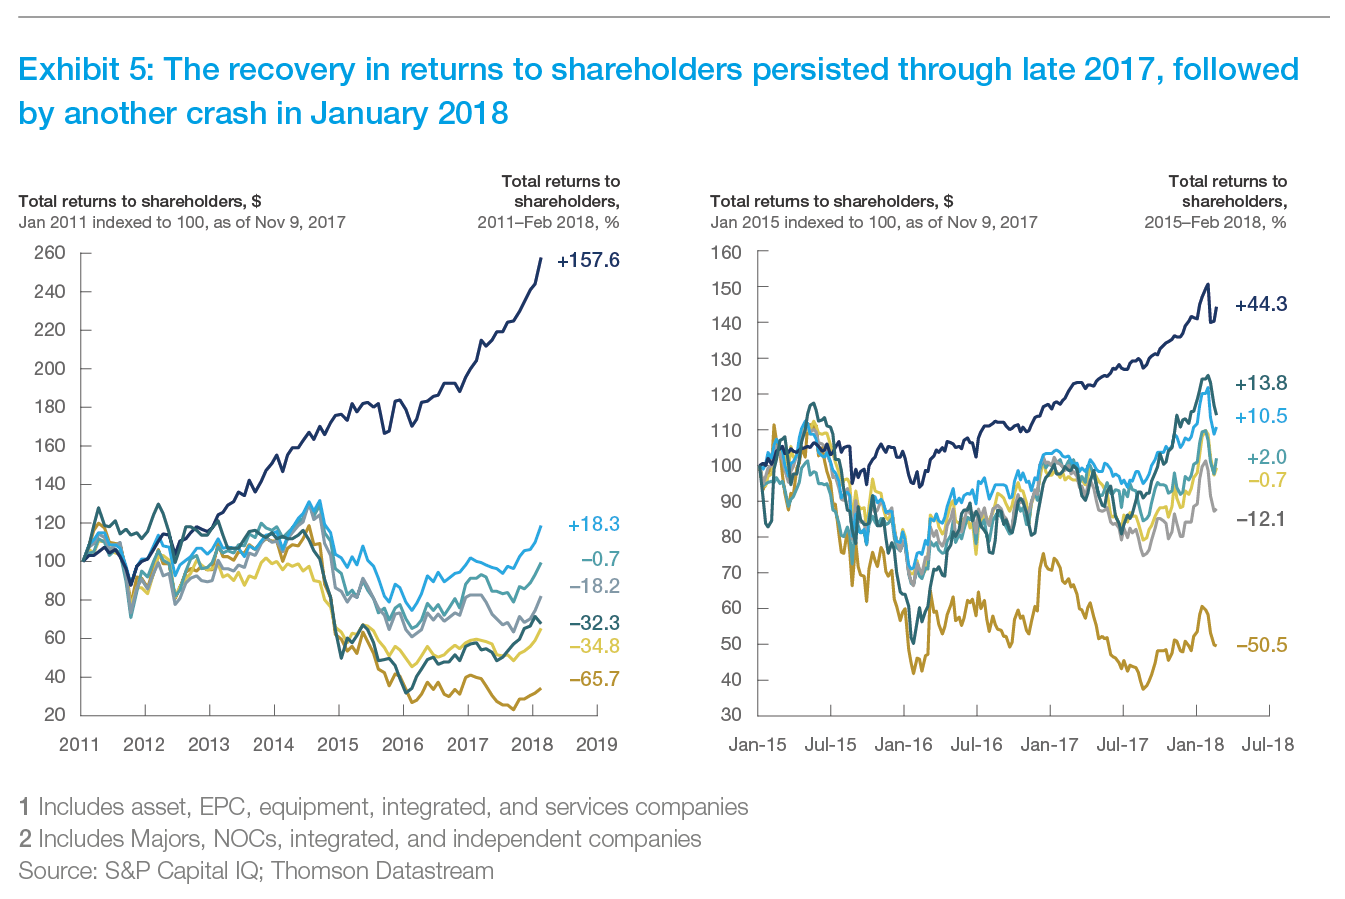 Exhibit 5: The recovery in returns to shareholders persisted through late 2017, followed by another crash in January 2018